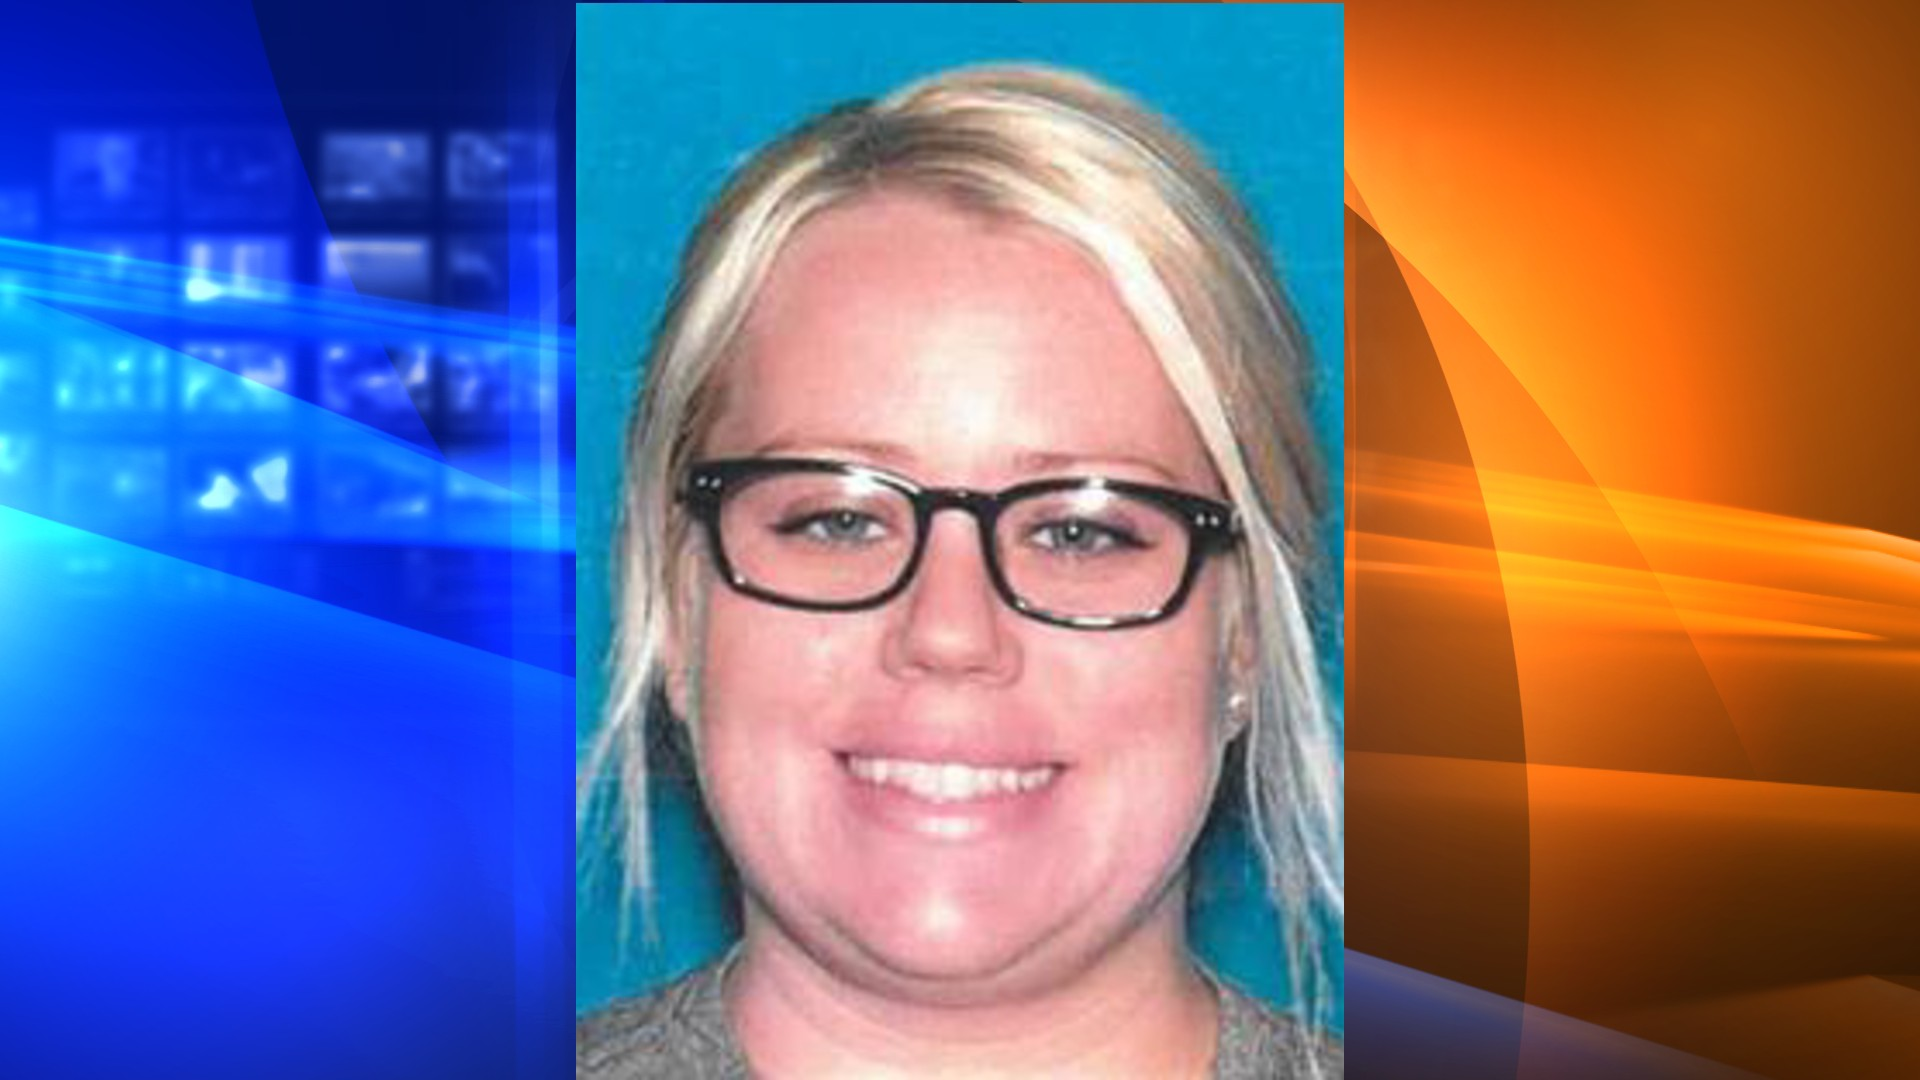 A San Bernardino woman and her teenage son were arrested on felony charges after her toddler was shot in the back seat of her vehicle by her teenage son. (San Bernardino Police Department)